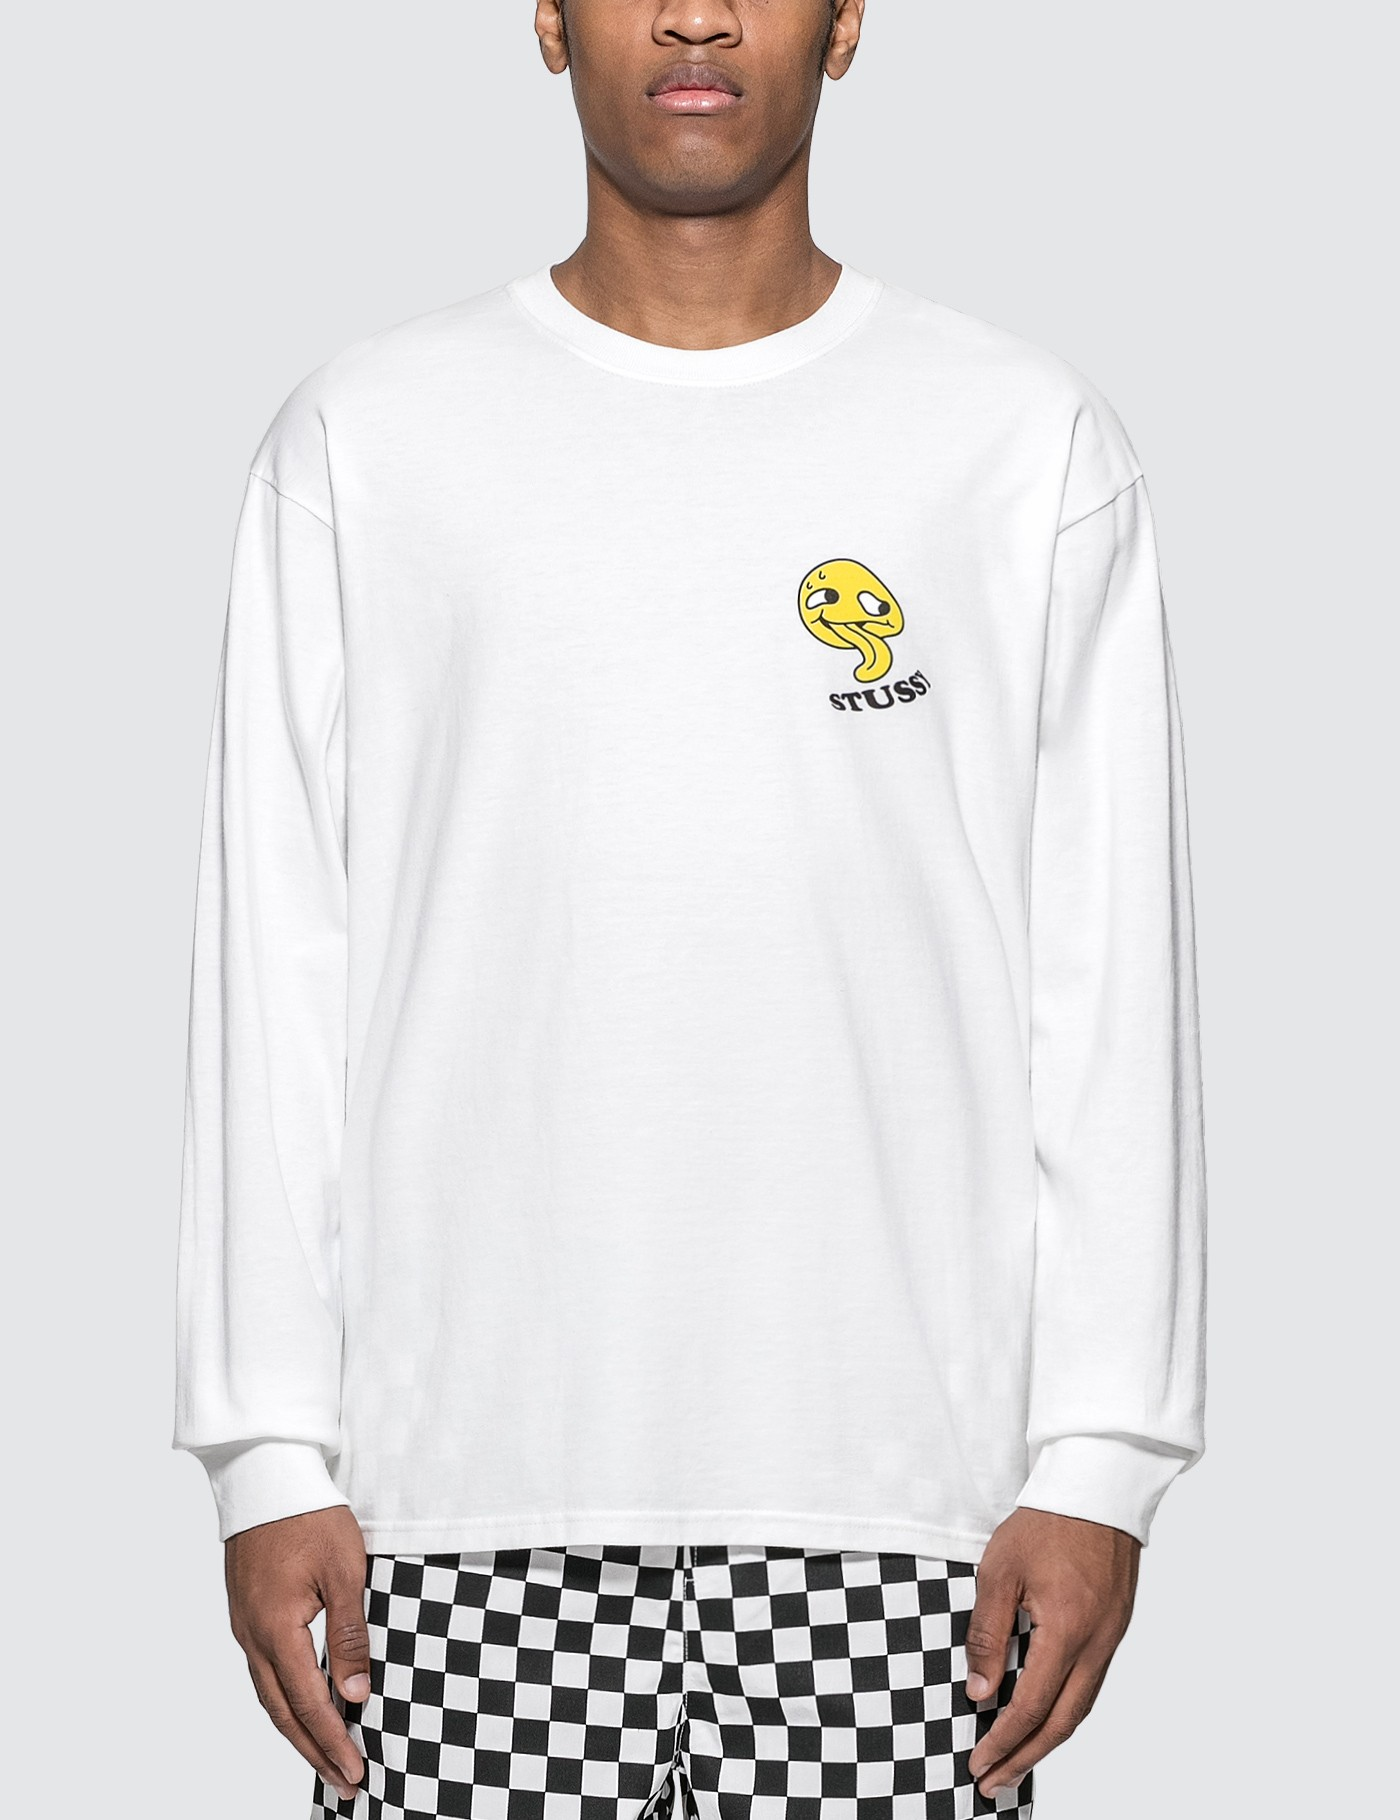 Stussy Dose Long Sleeve T-shirt